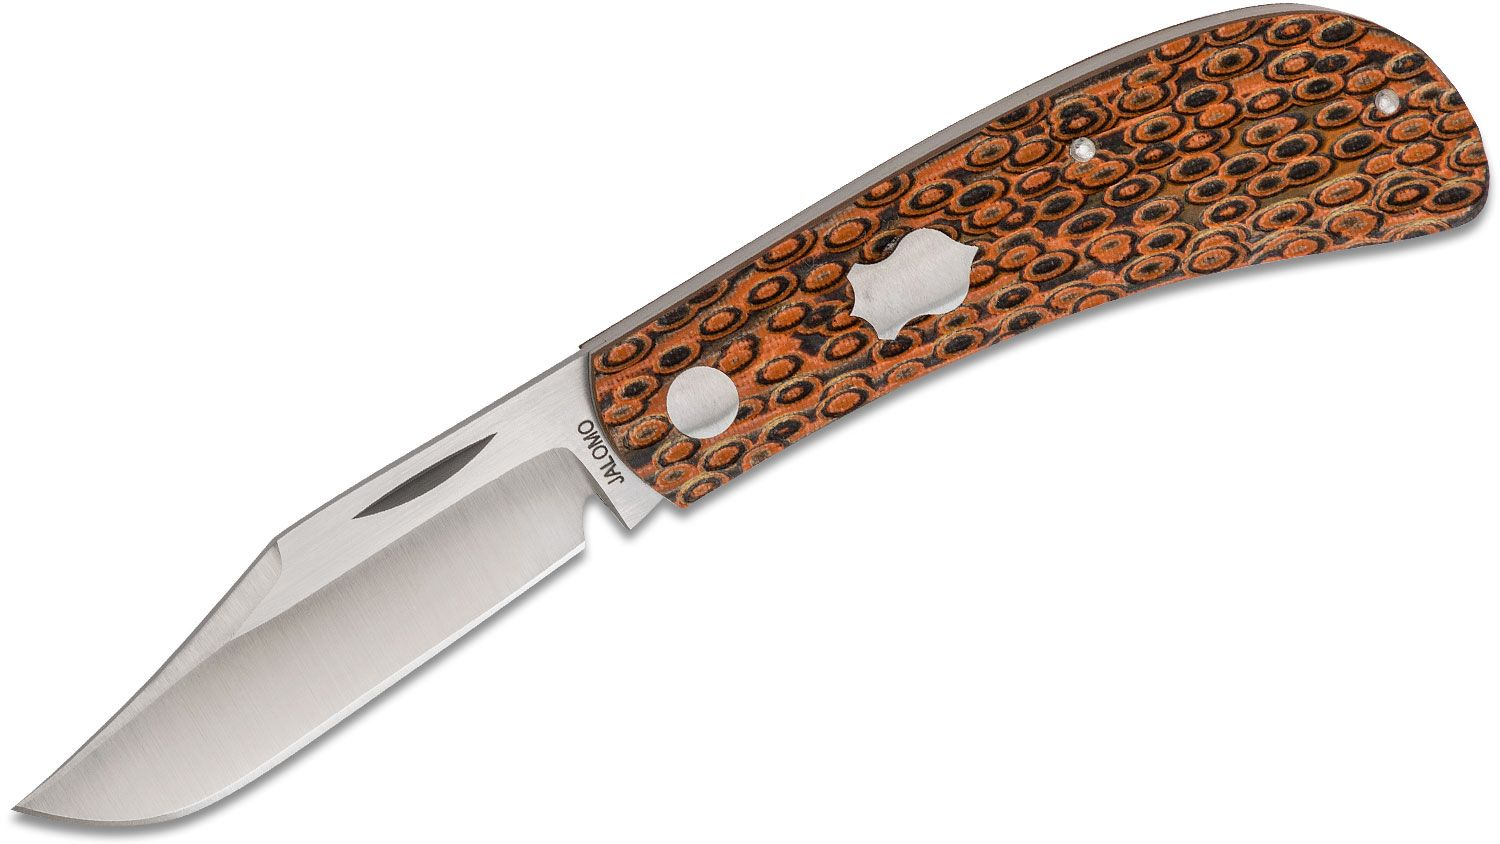 Pepe Jalomo Custom Lanny's Clip Traditional Folding Knife 3 inch CPM-154 Satin Blade, Dimpled Orange/Black G10 Handles